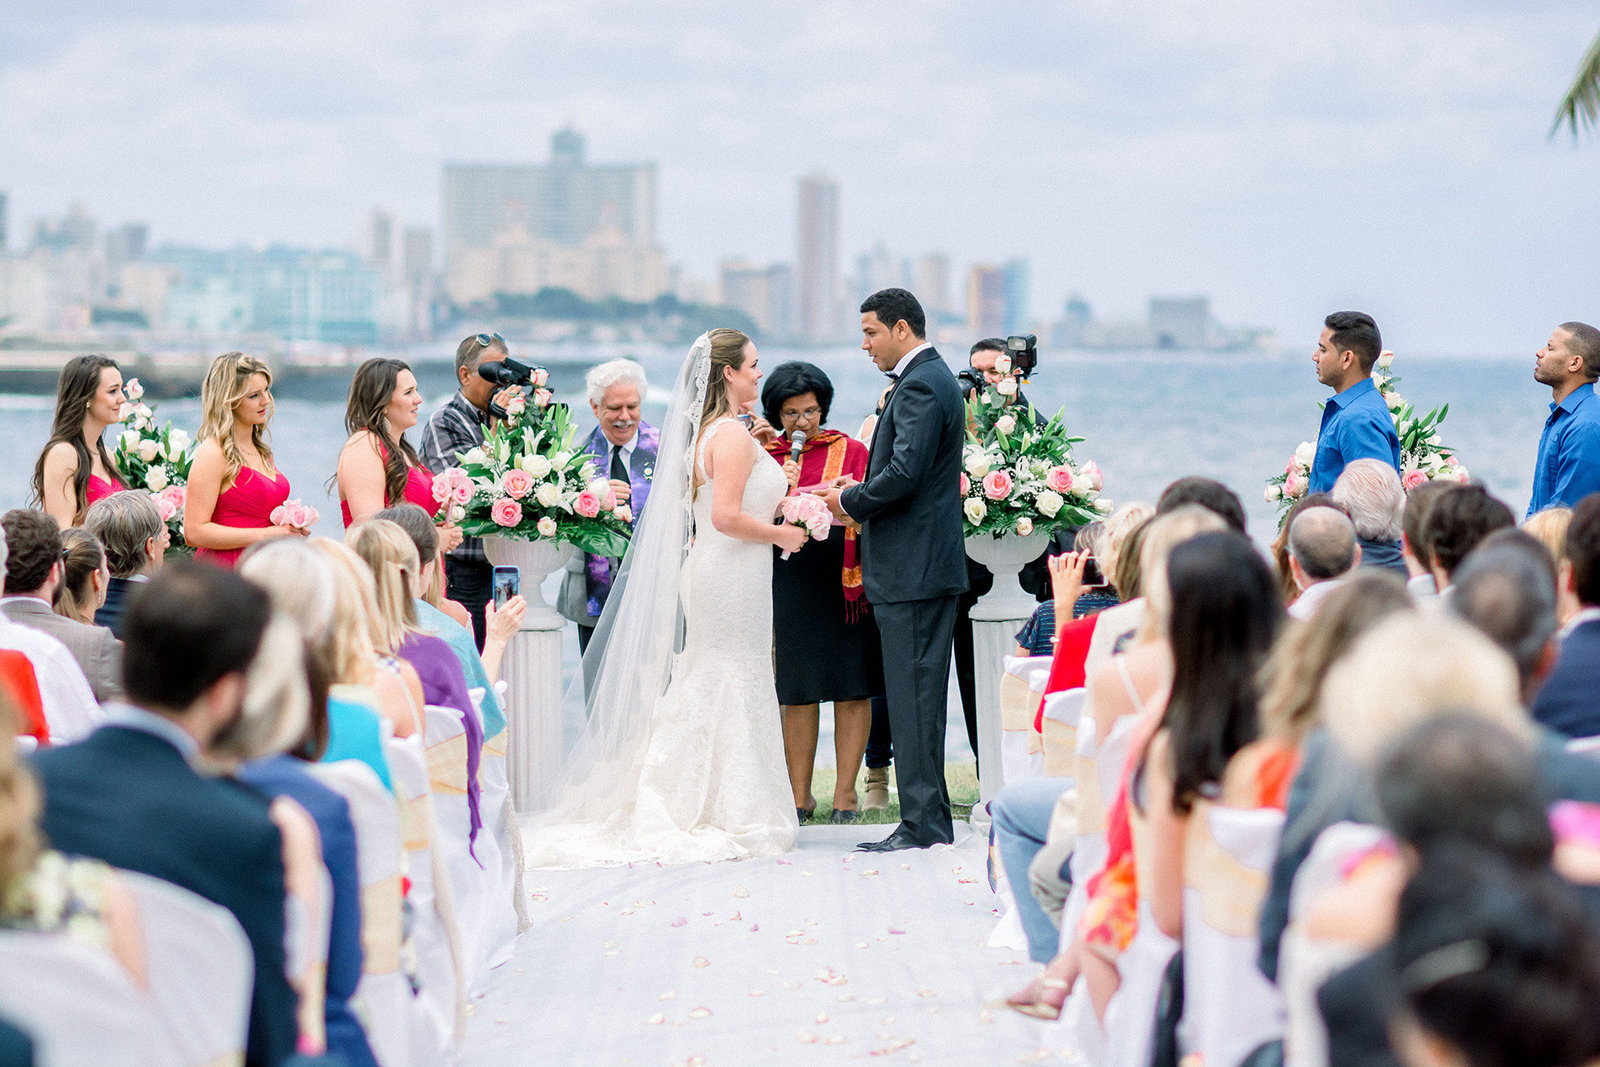 20150328-Pura-Soul-Photo-Cuba-Wedding-63